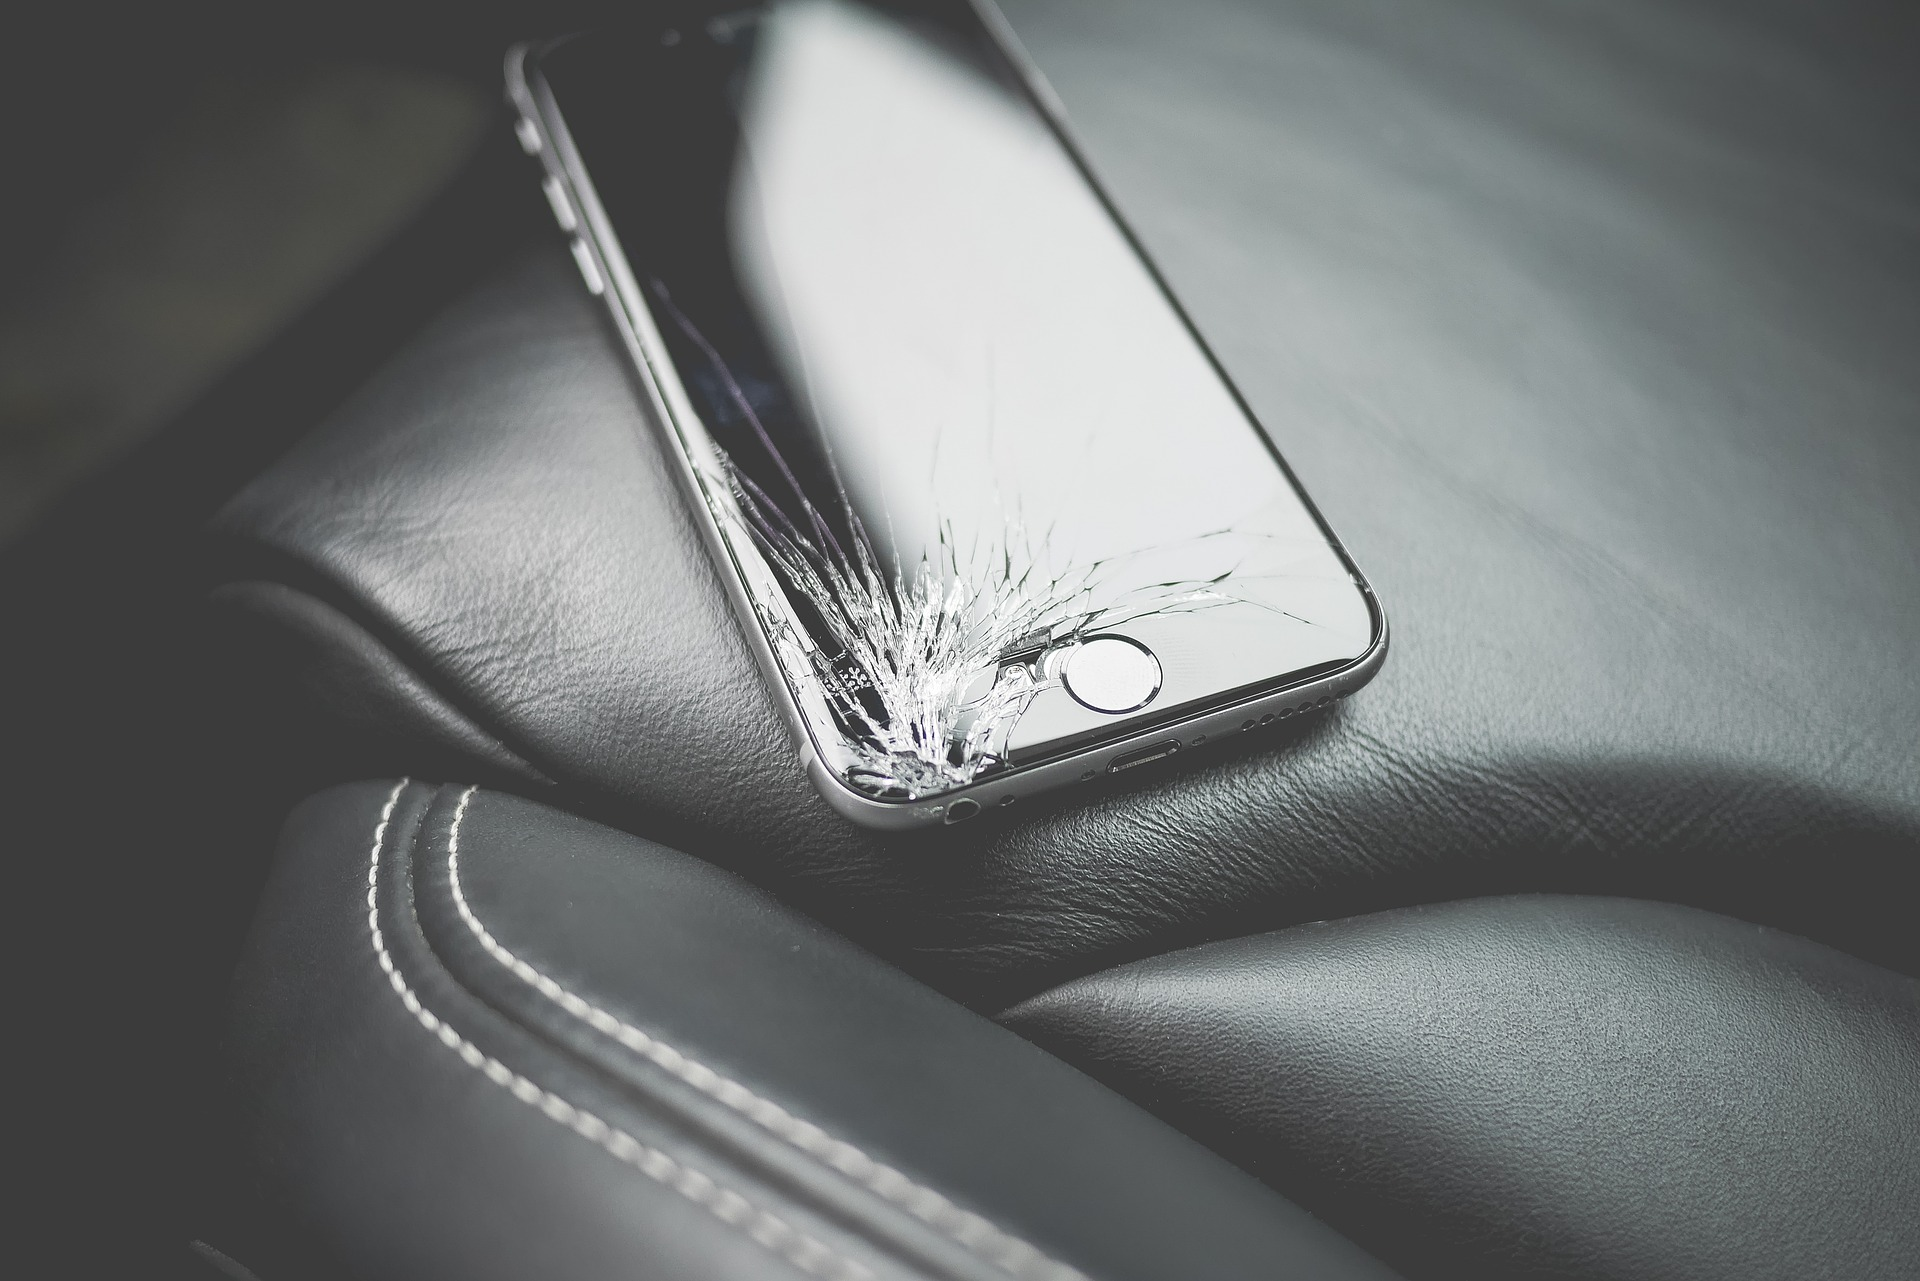 phone and gadget insurance cracked screen